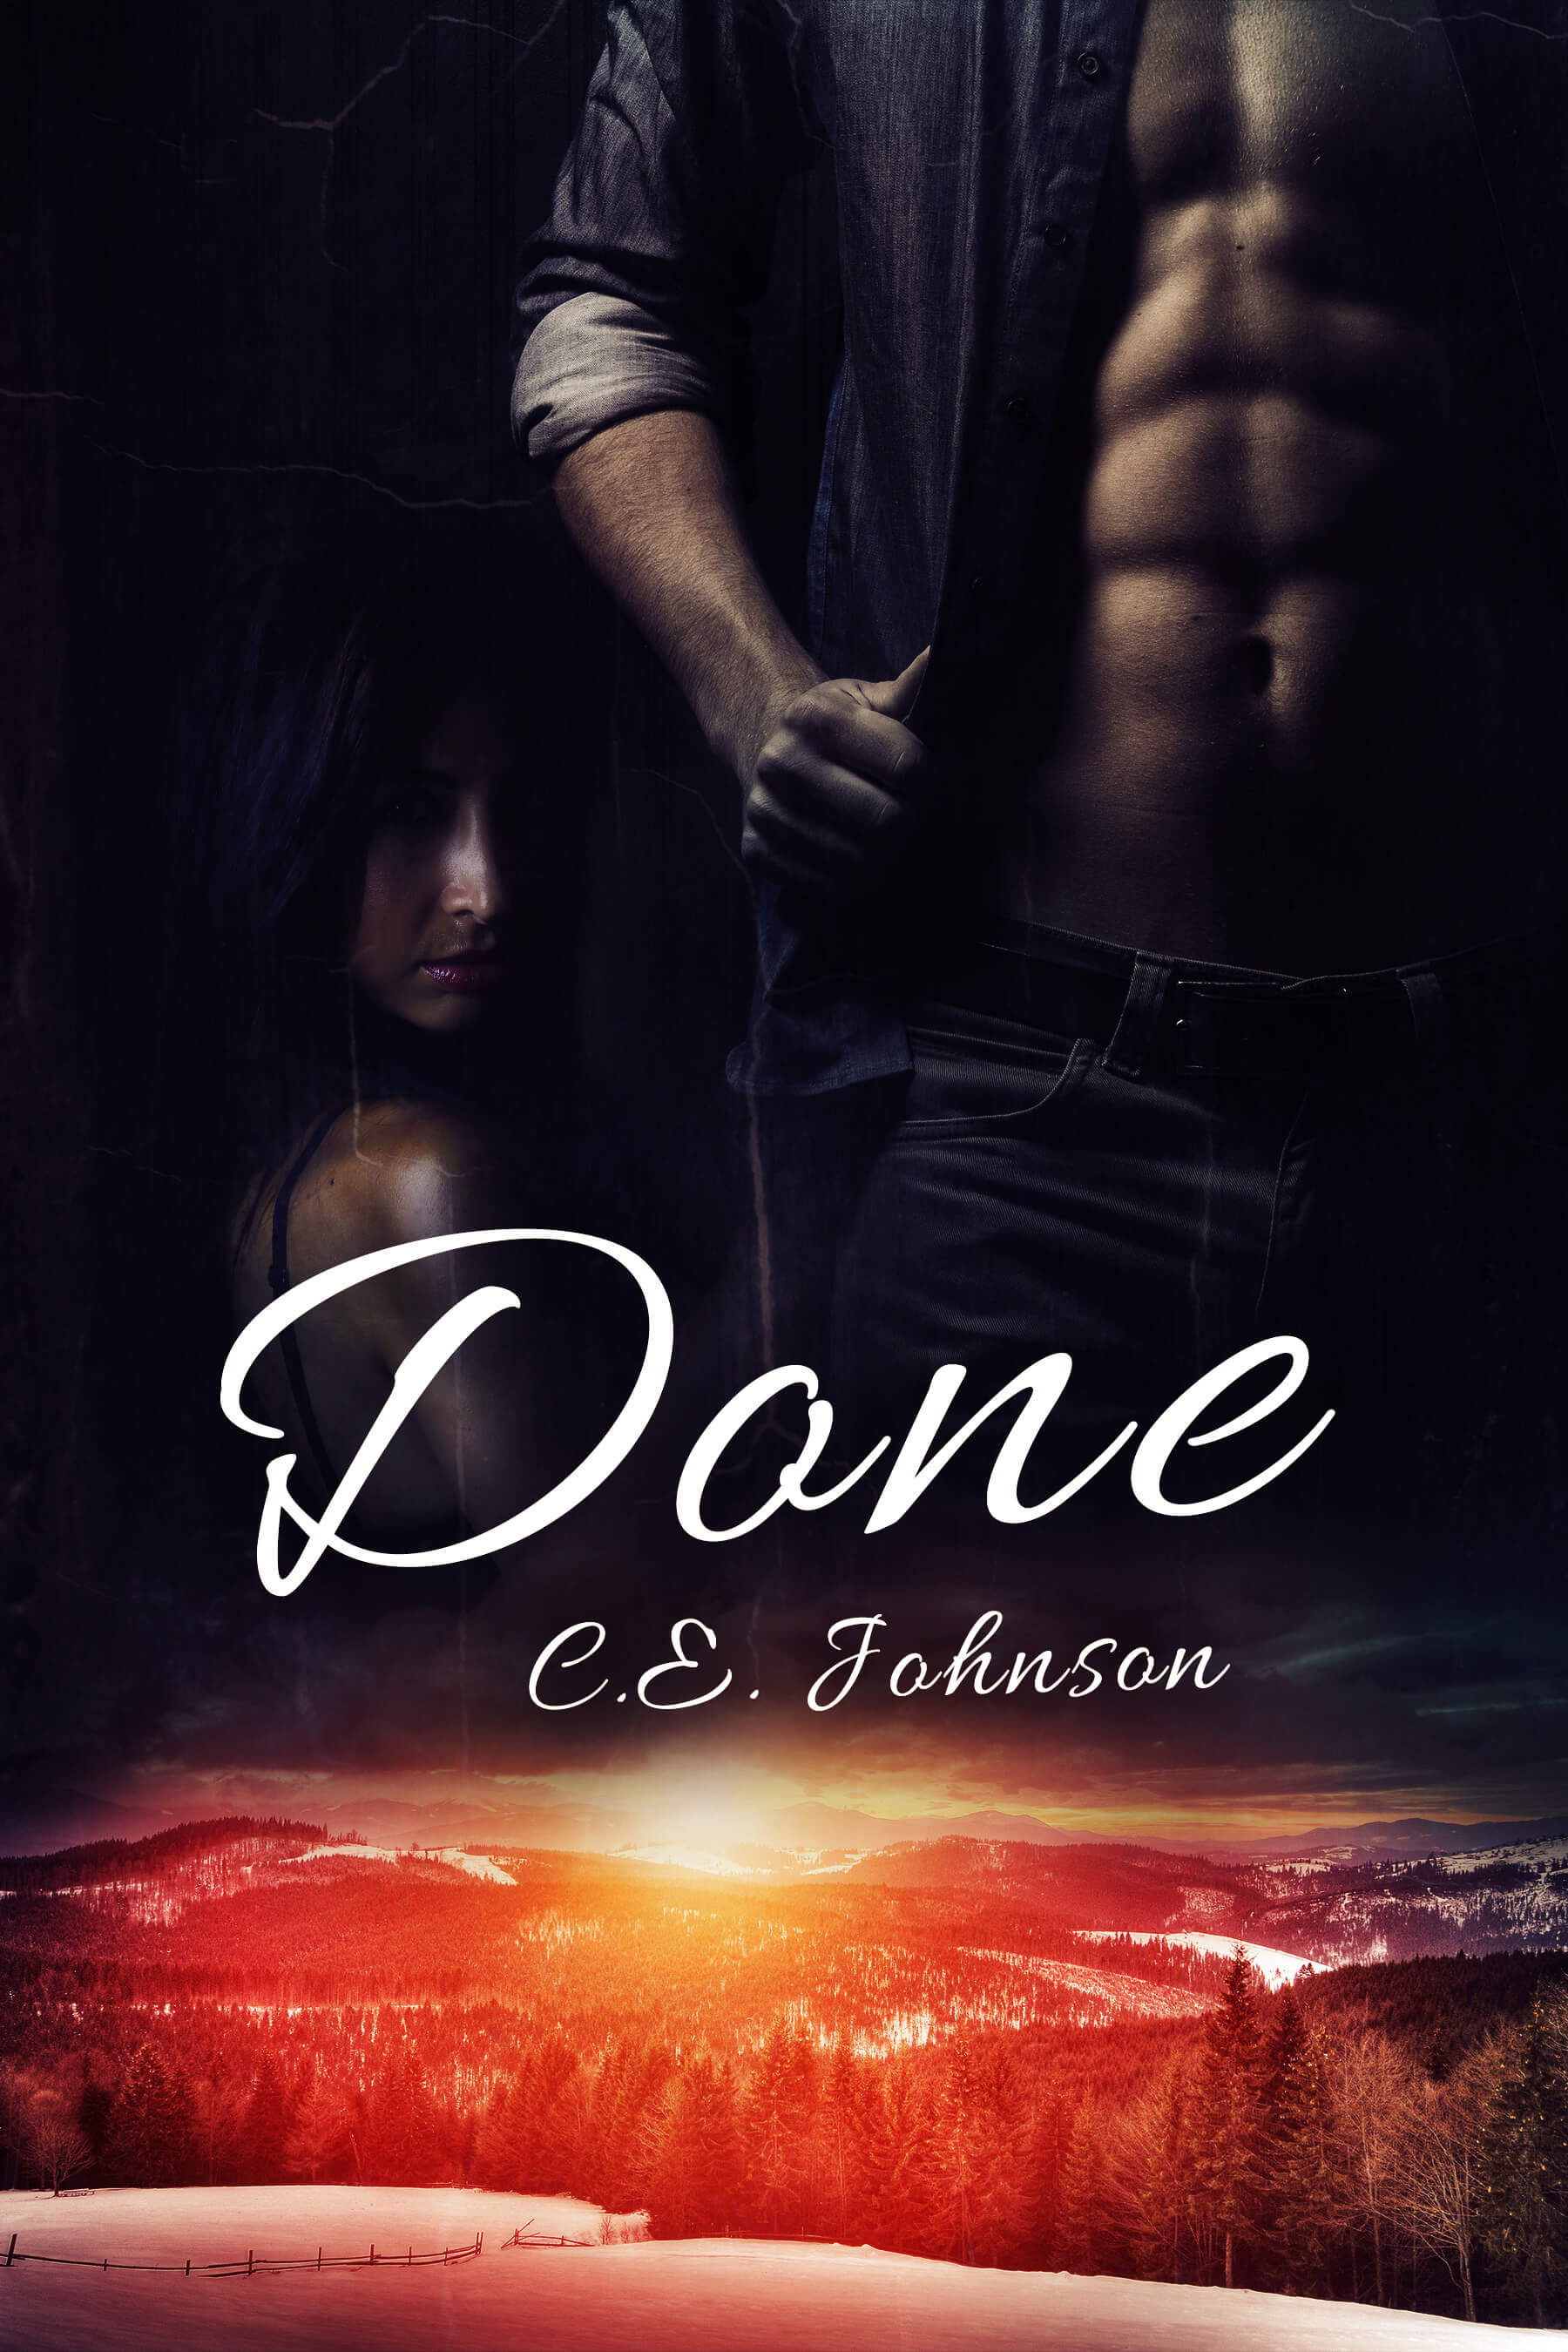 Done by C.E. Johnson: Review